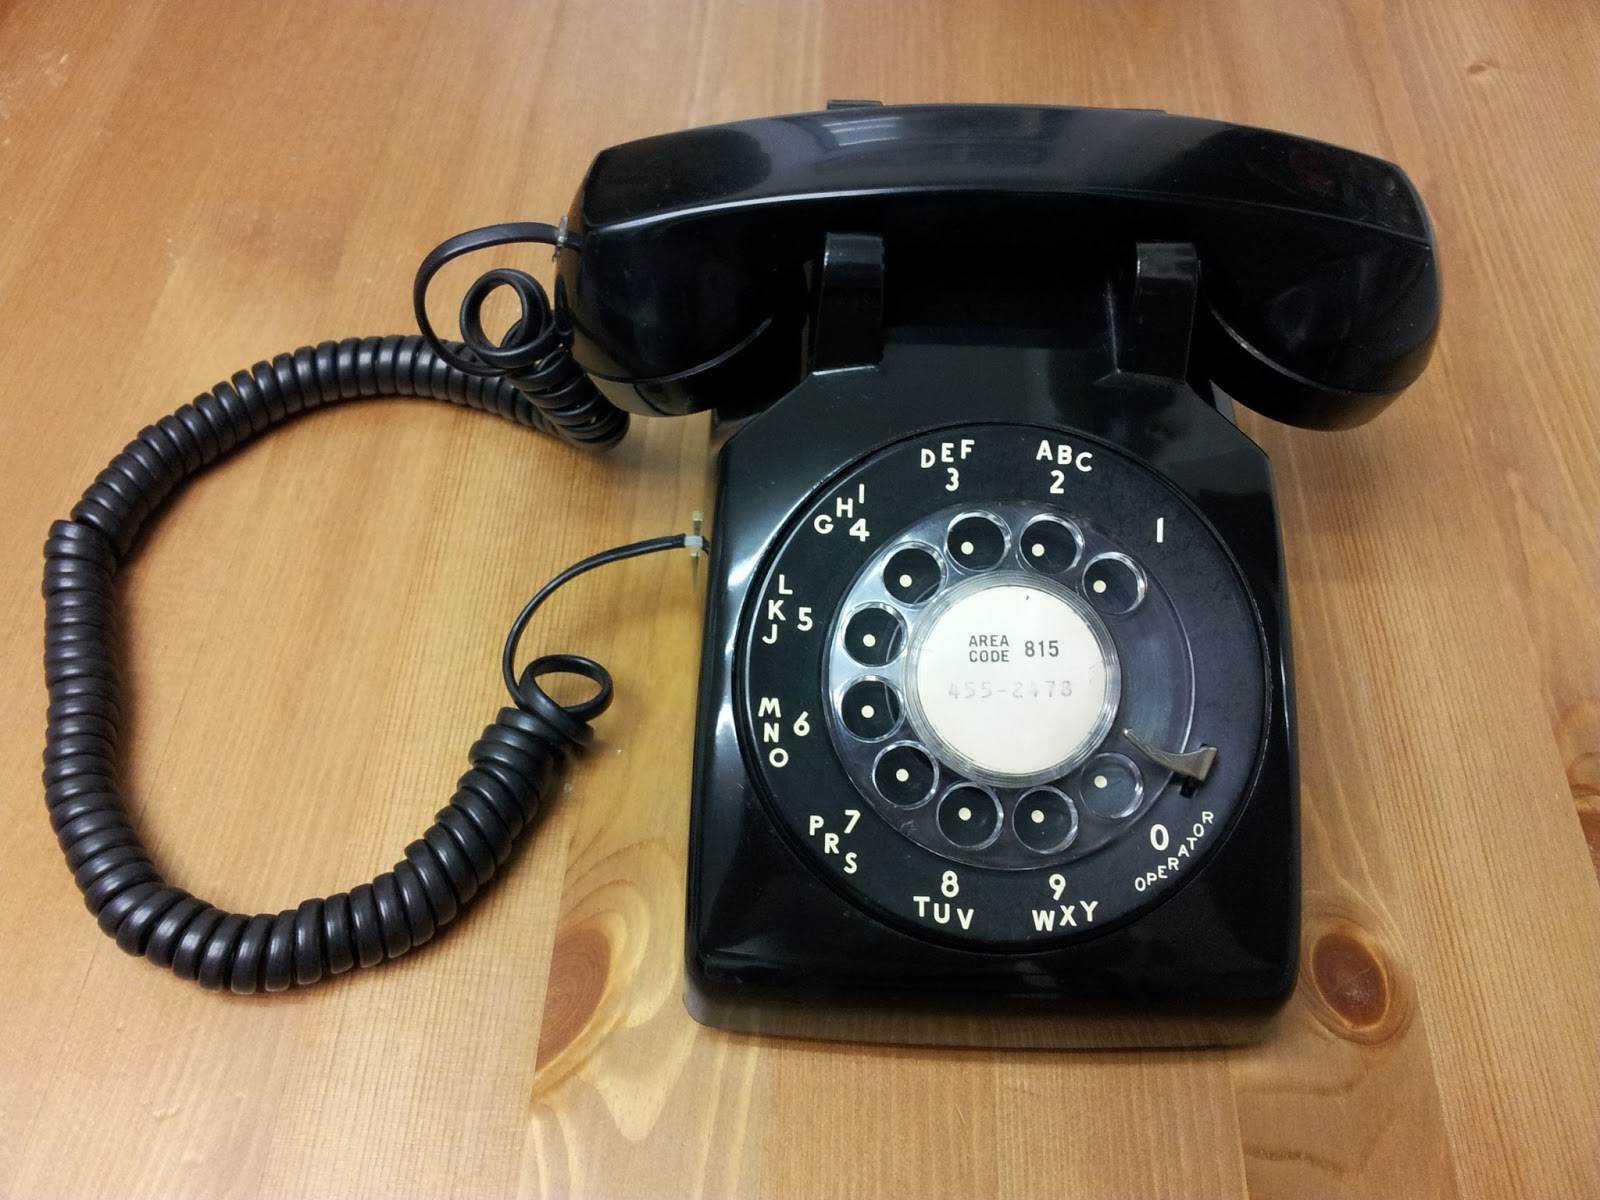 medium resolution of ironically rotary dial or pulse dial is actually digital protocol and is supposed to be closer relative to voip than modern push buttons phones